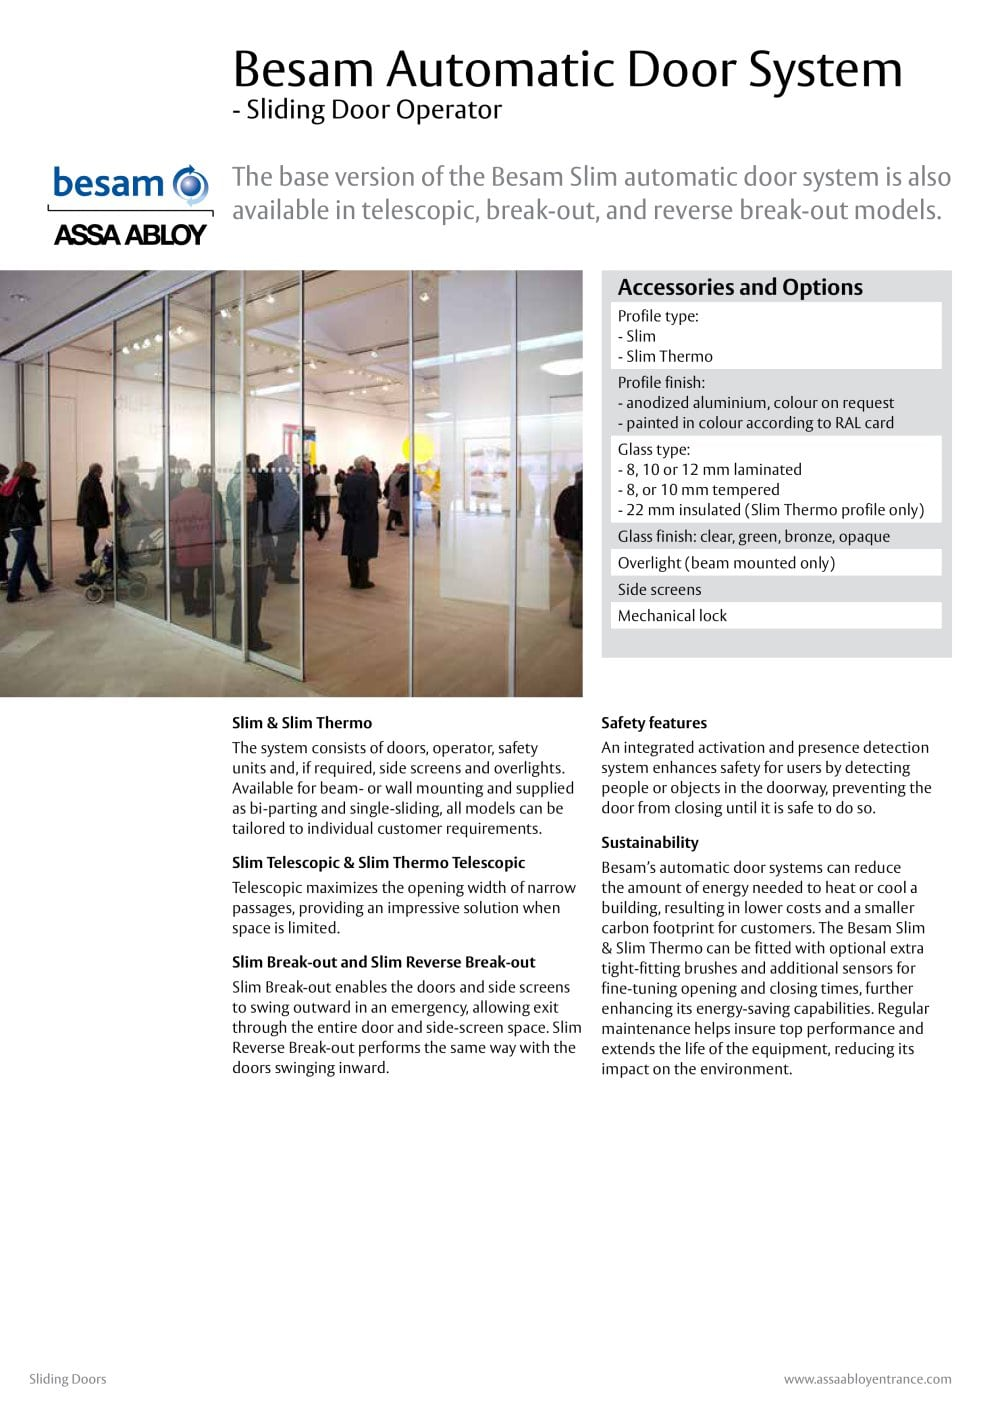 Besam sl500 all glass sliding door system with semi transparent option - Besam Automatic Door System 1 6 Pages